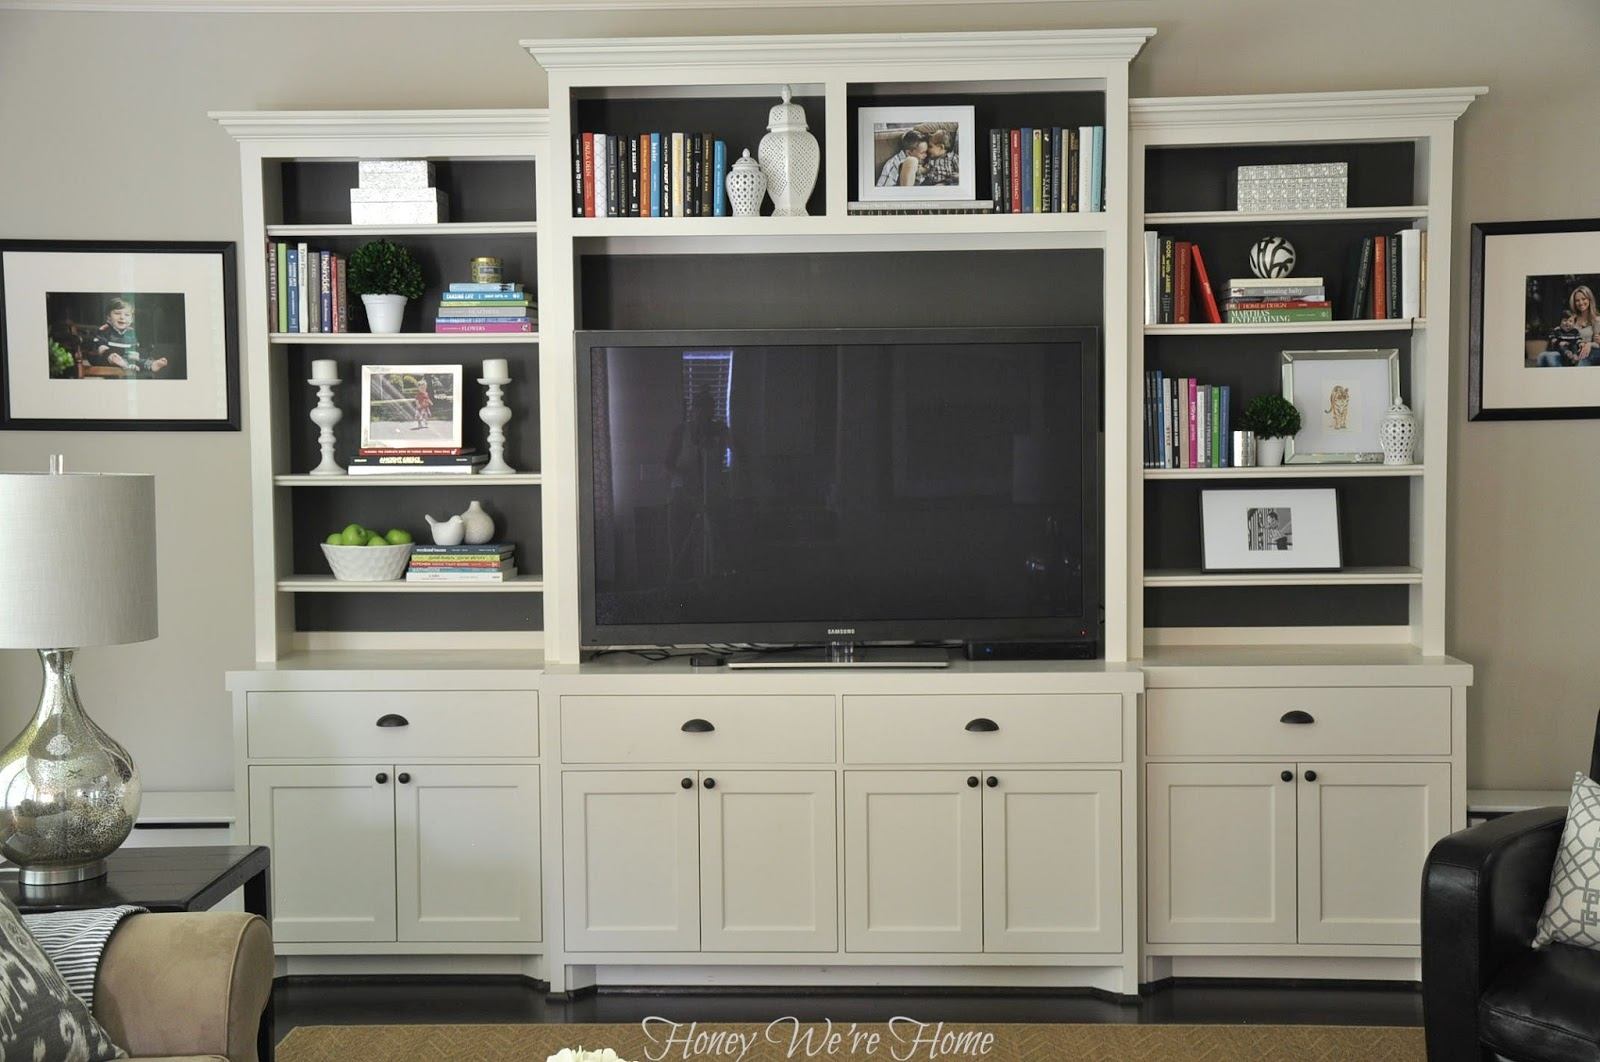 painted media cabinet bookshelf styling daun segar sari